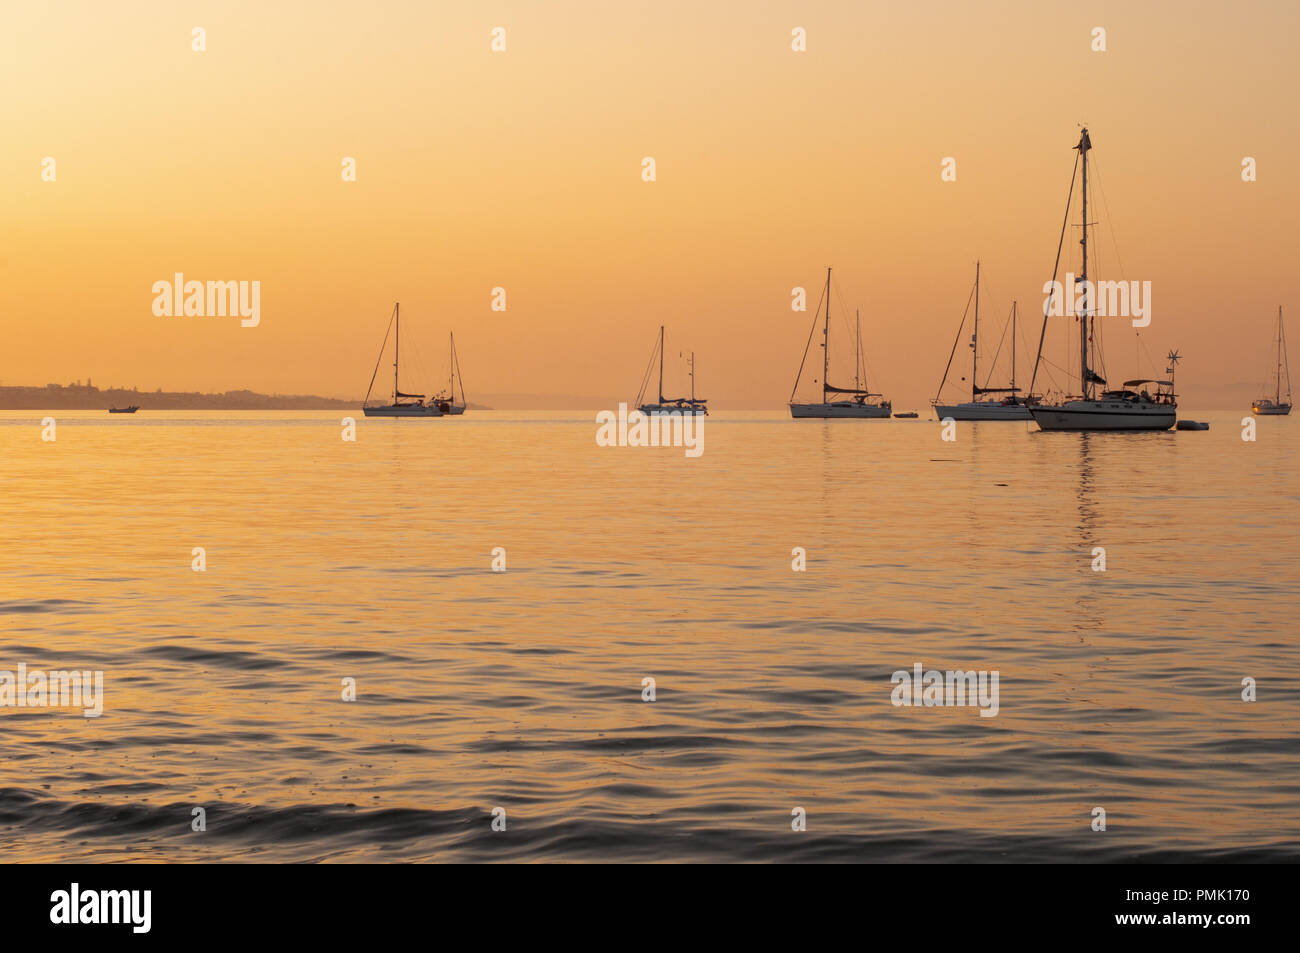 Sunrise with Sailing Yachts Anchored at Sea - Stock Image